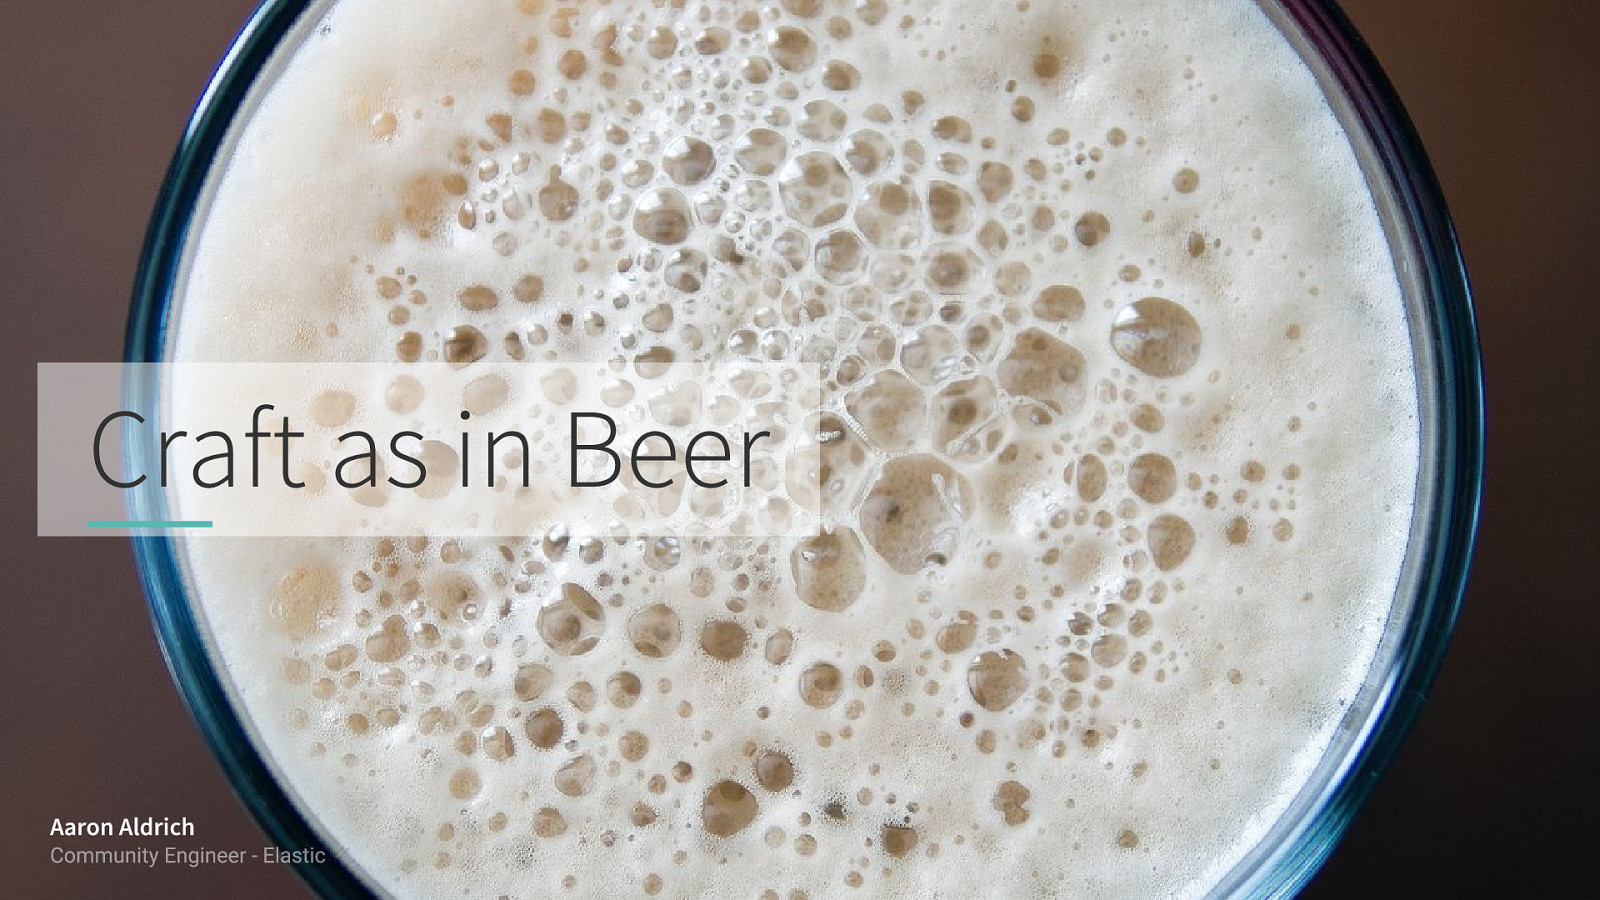 Craft as in Beer: The value of community